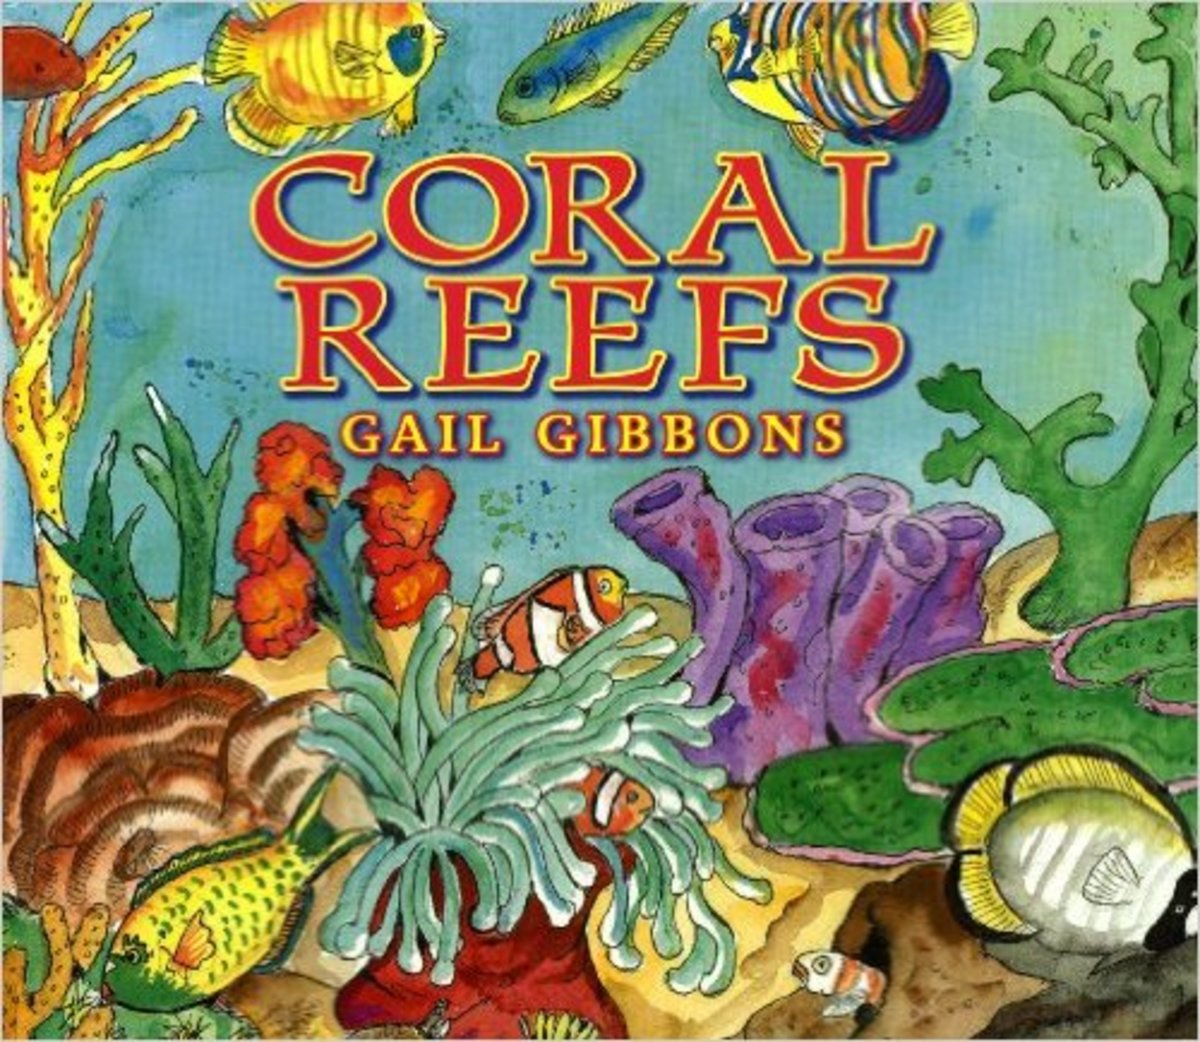 Coral Reefs by Gail Gibbons